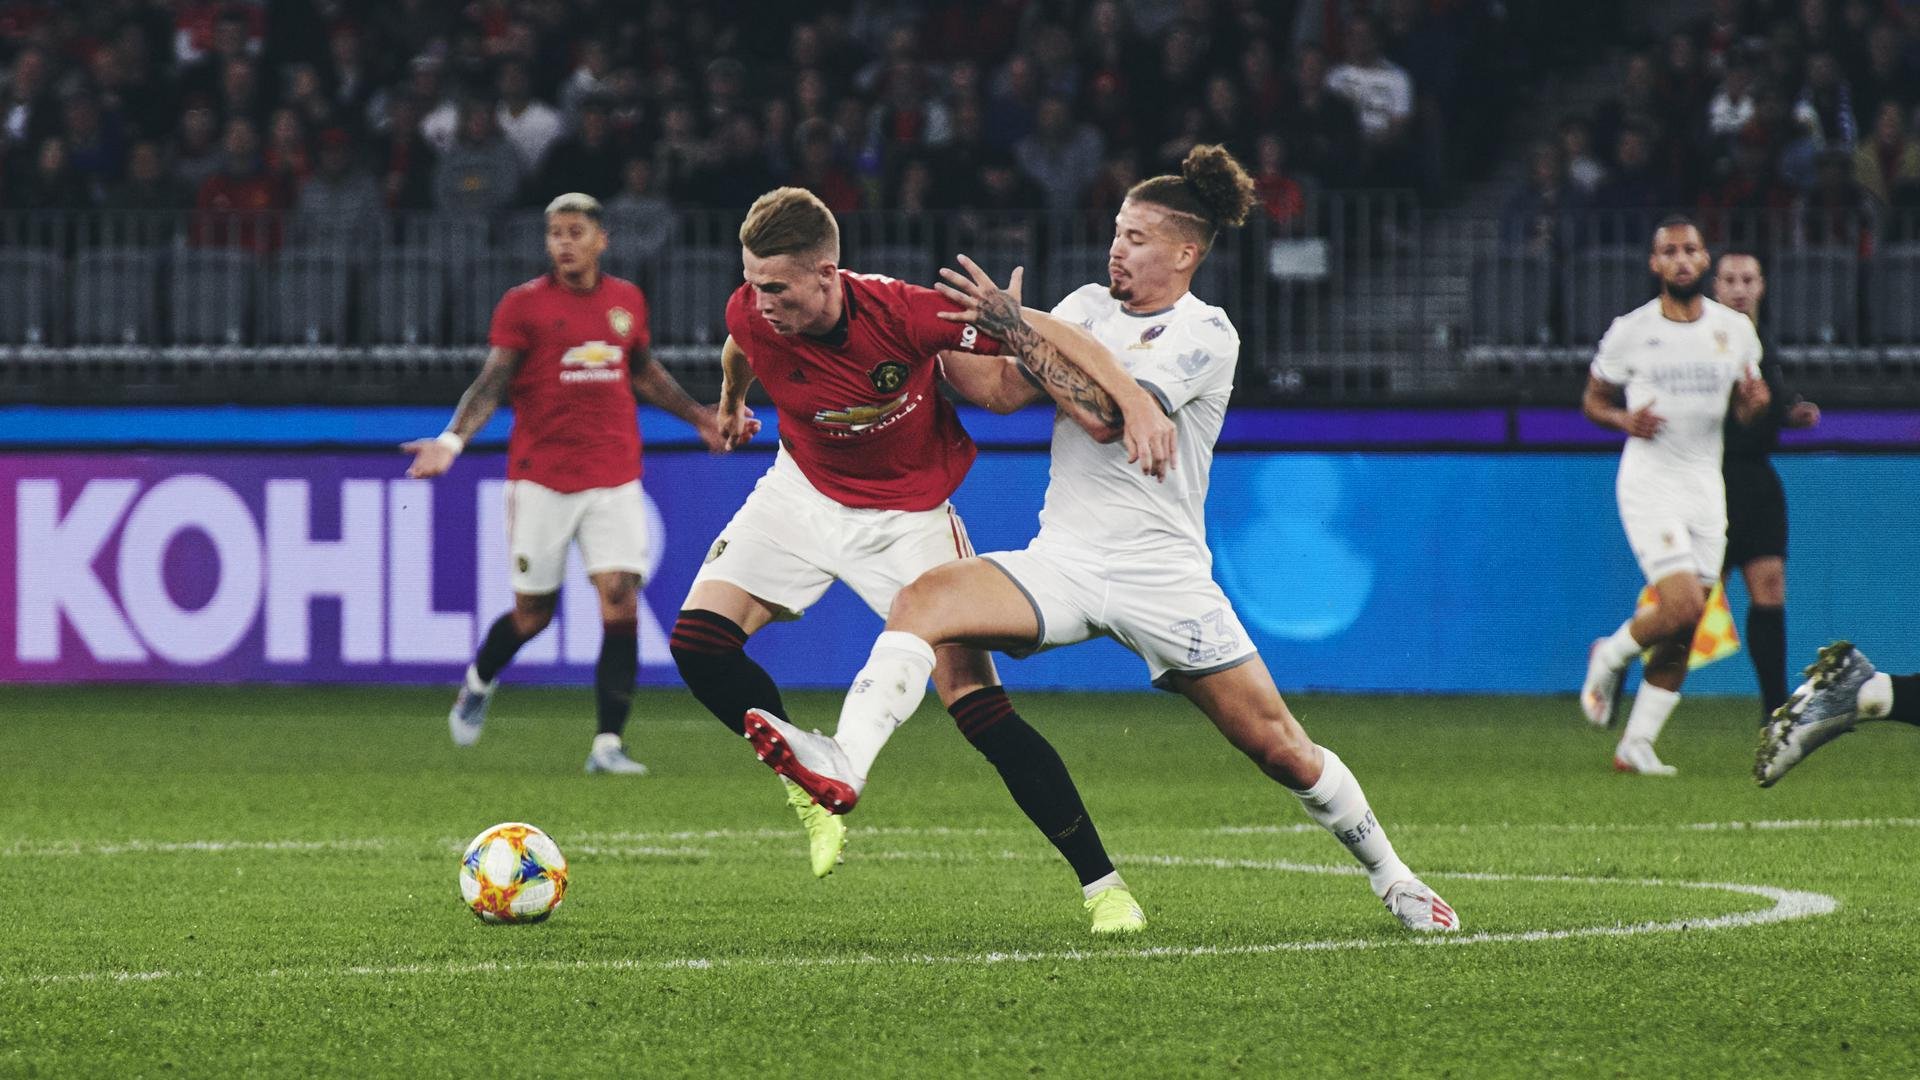 Scott McTominay powers through the midfield against Leeds.